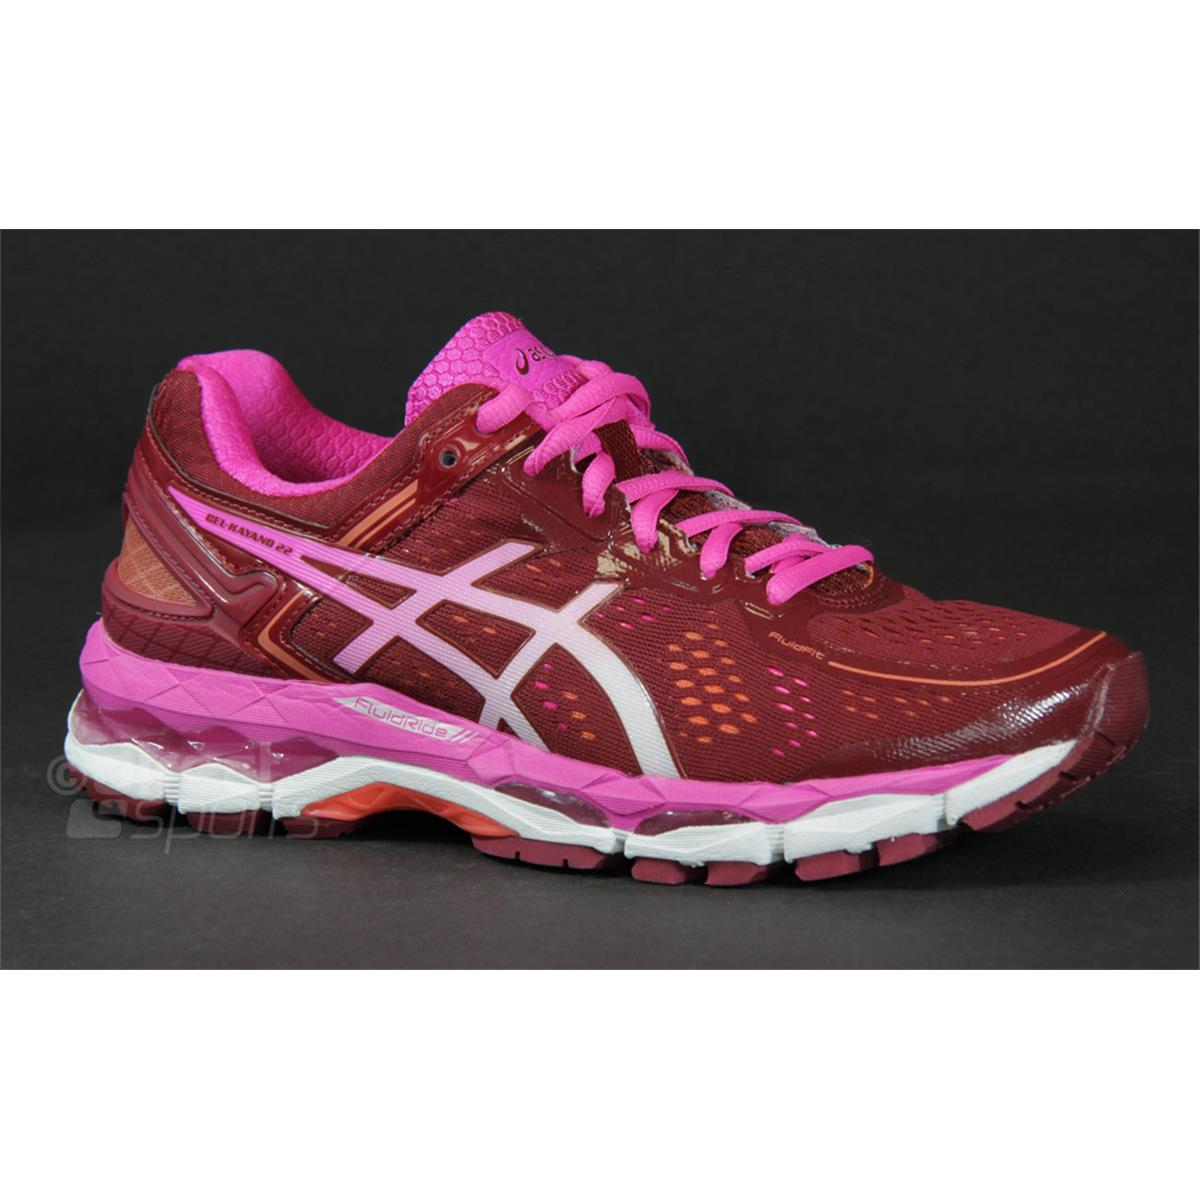 Asics Gel Kayano 22 Women s Running Shoes ... 8ffff7ef200c